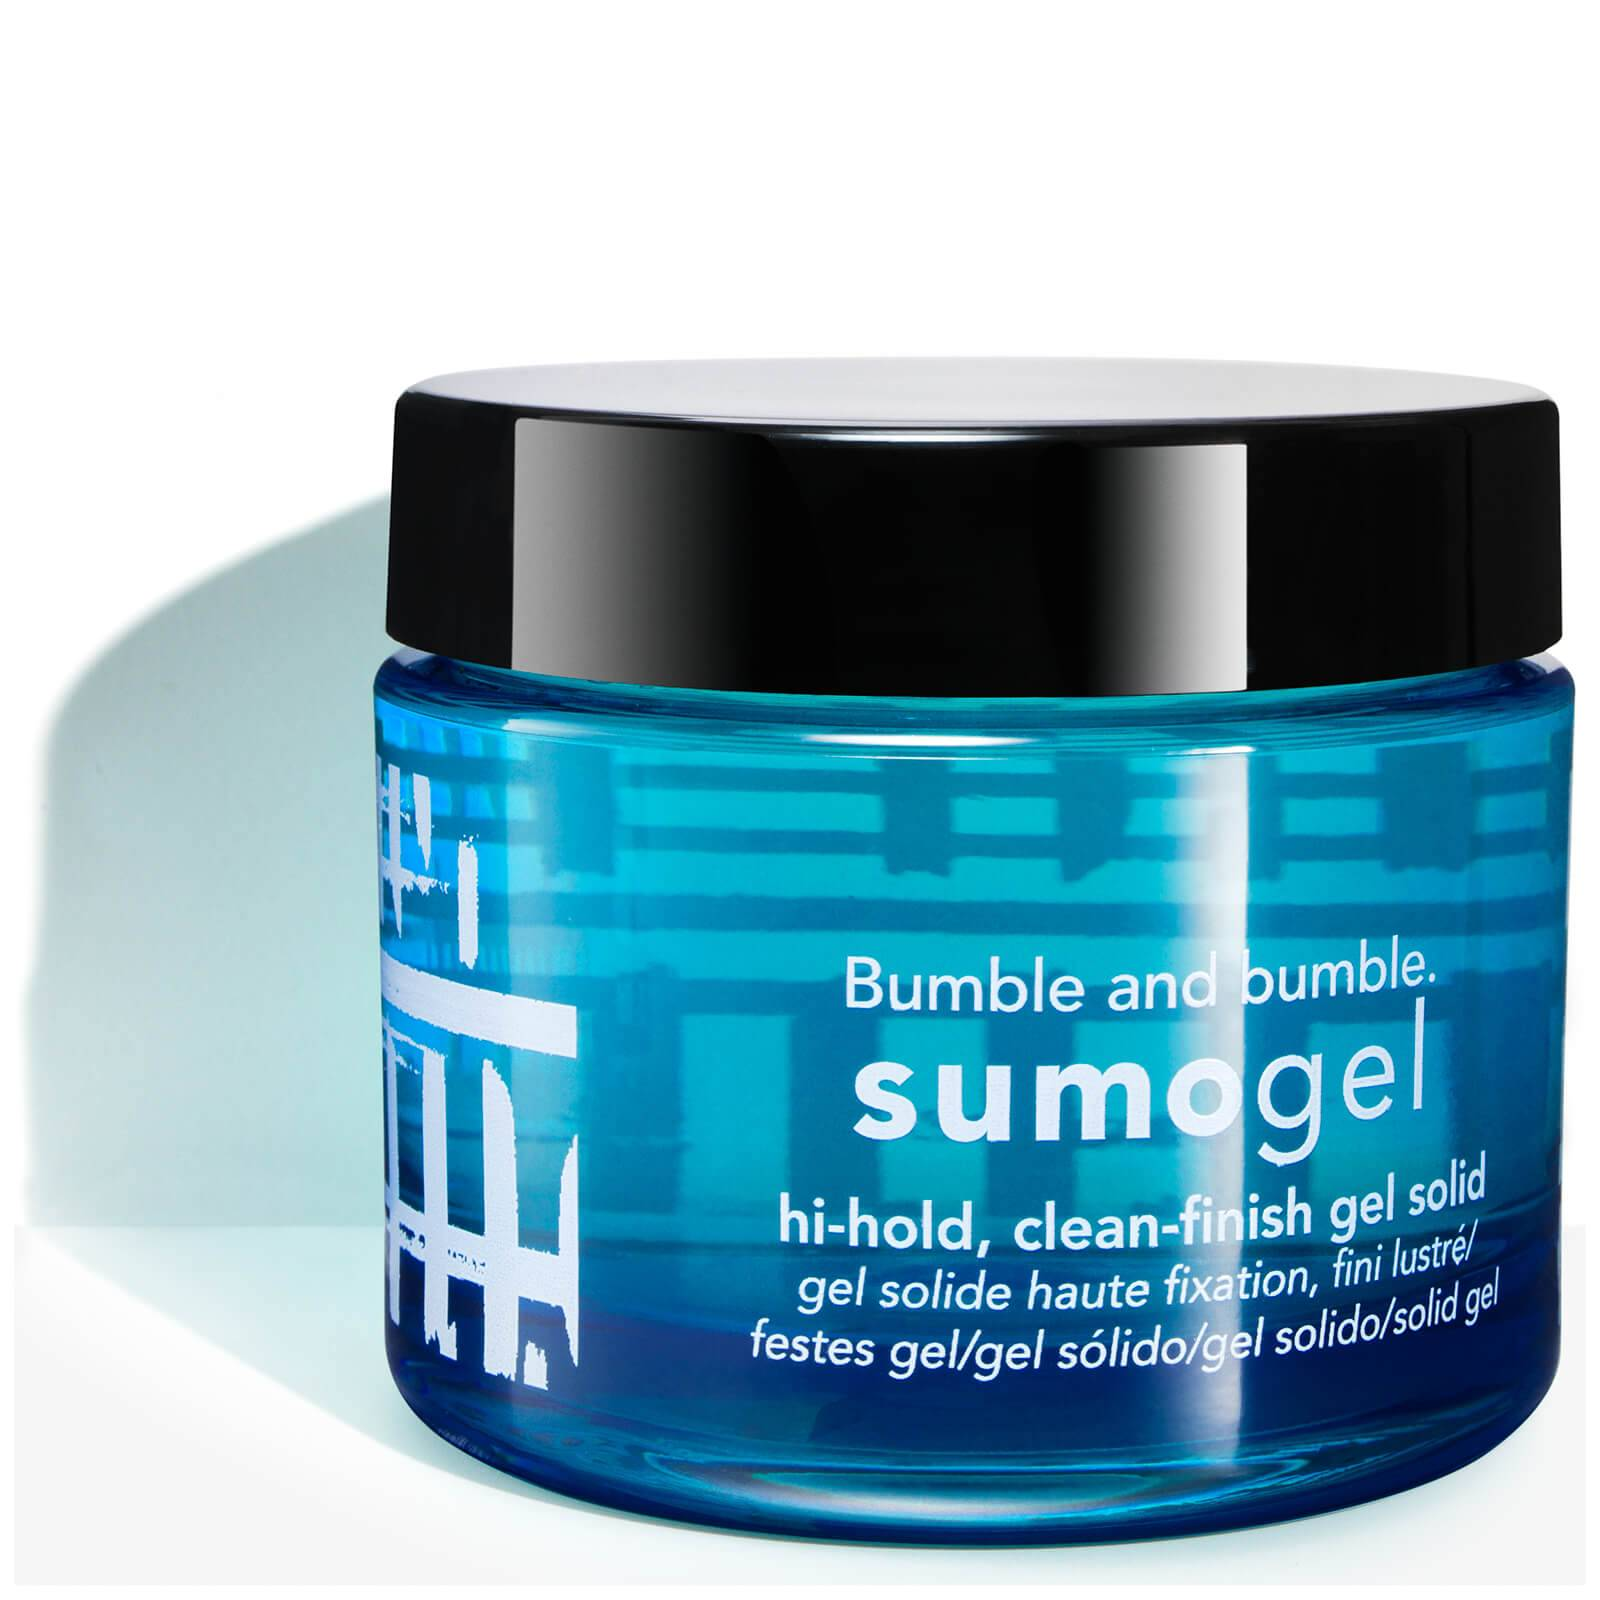 Bumble and bumble Gel solide Sumogel Bumble and bumble 50ml